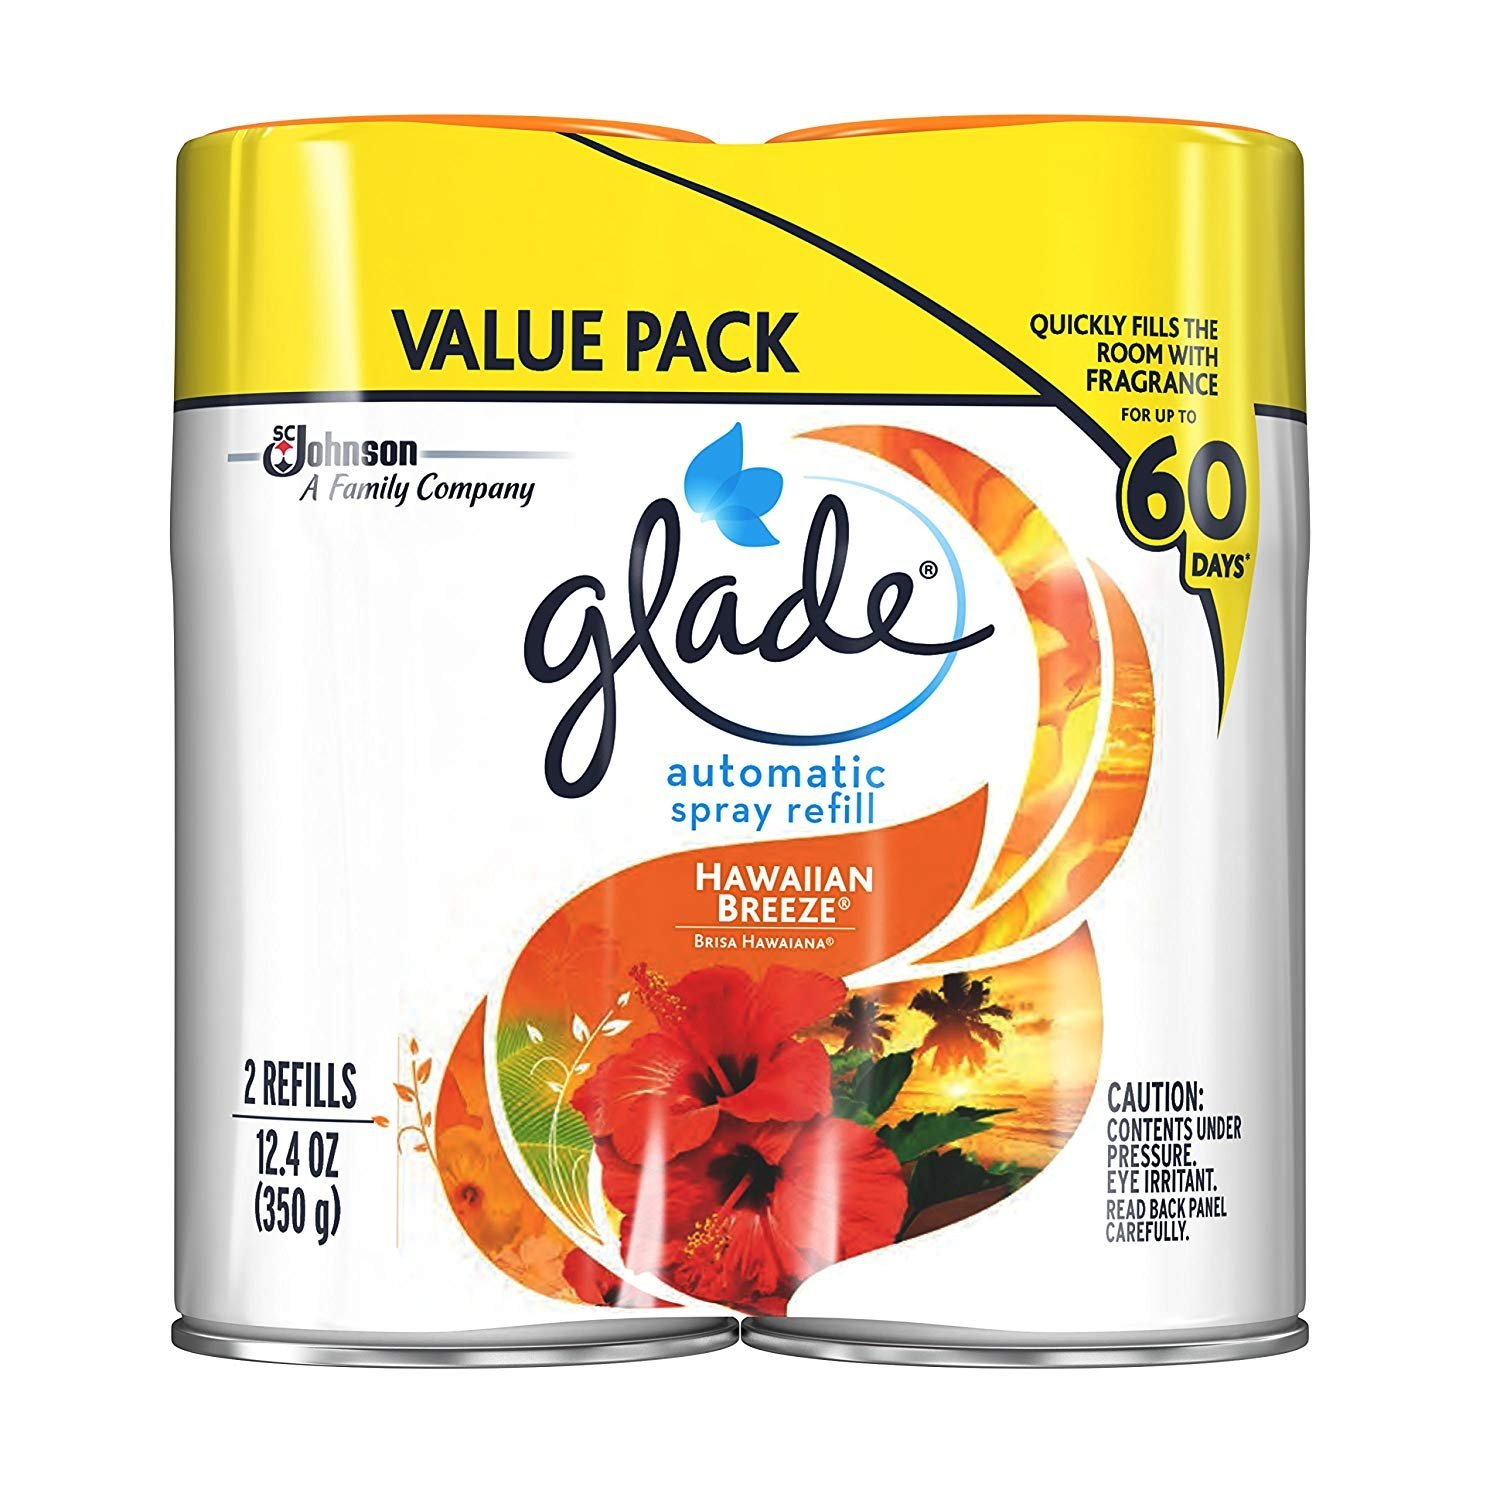 Glade Automatic Spray Air Freshener, 12.4 Ounce (Hawaiian Breeze, Pack - 3,(6 Count))